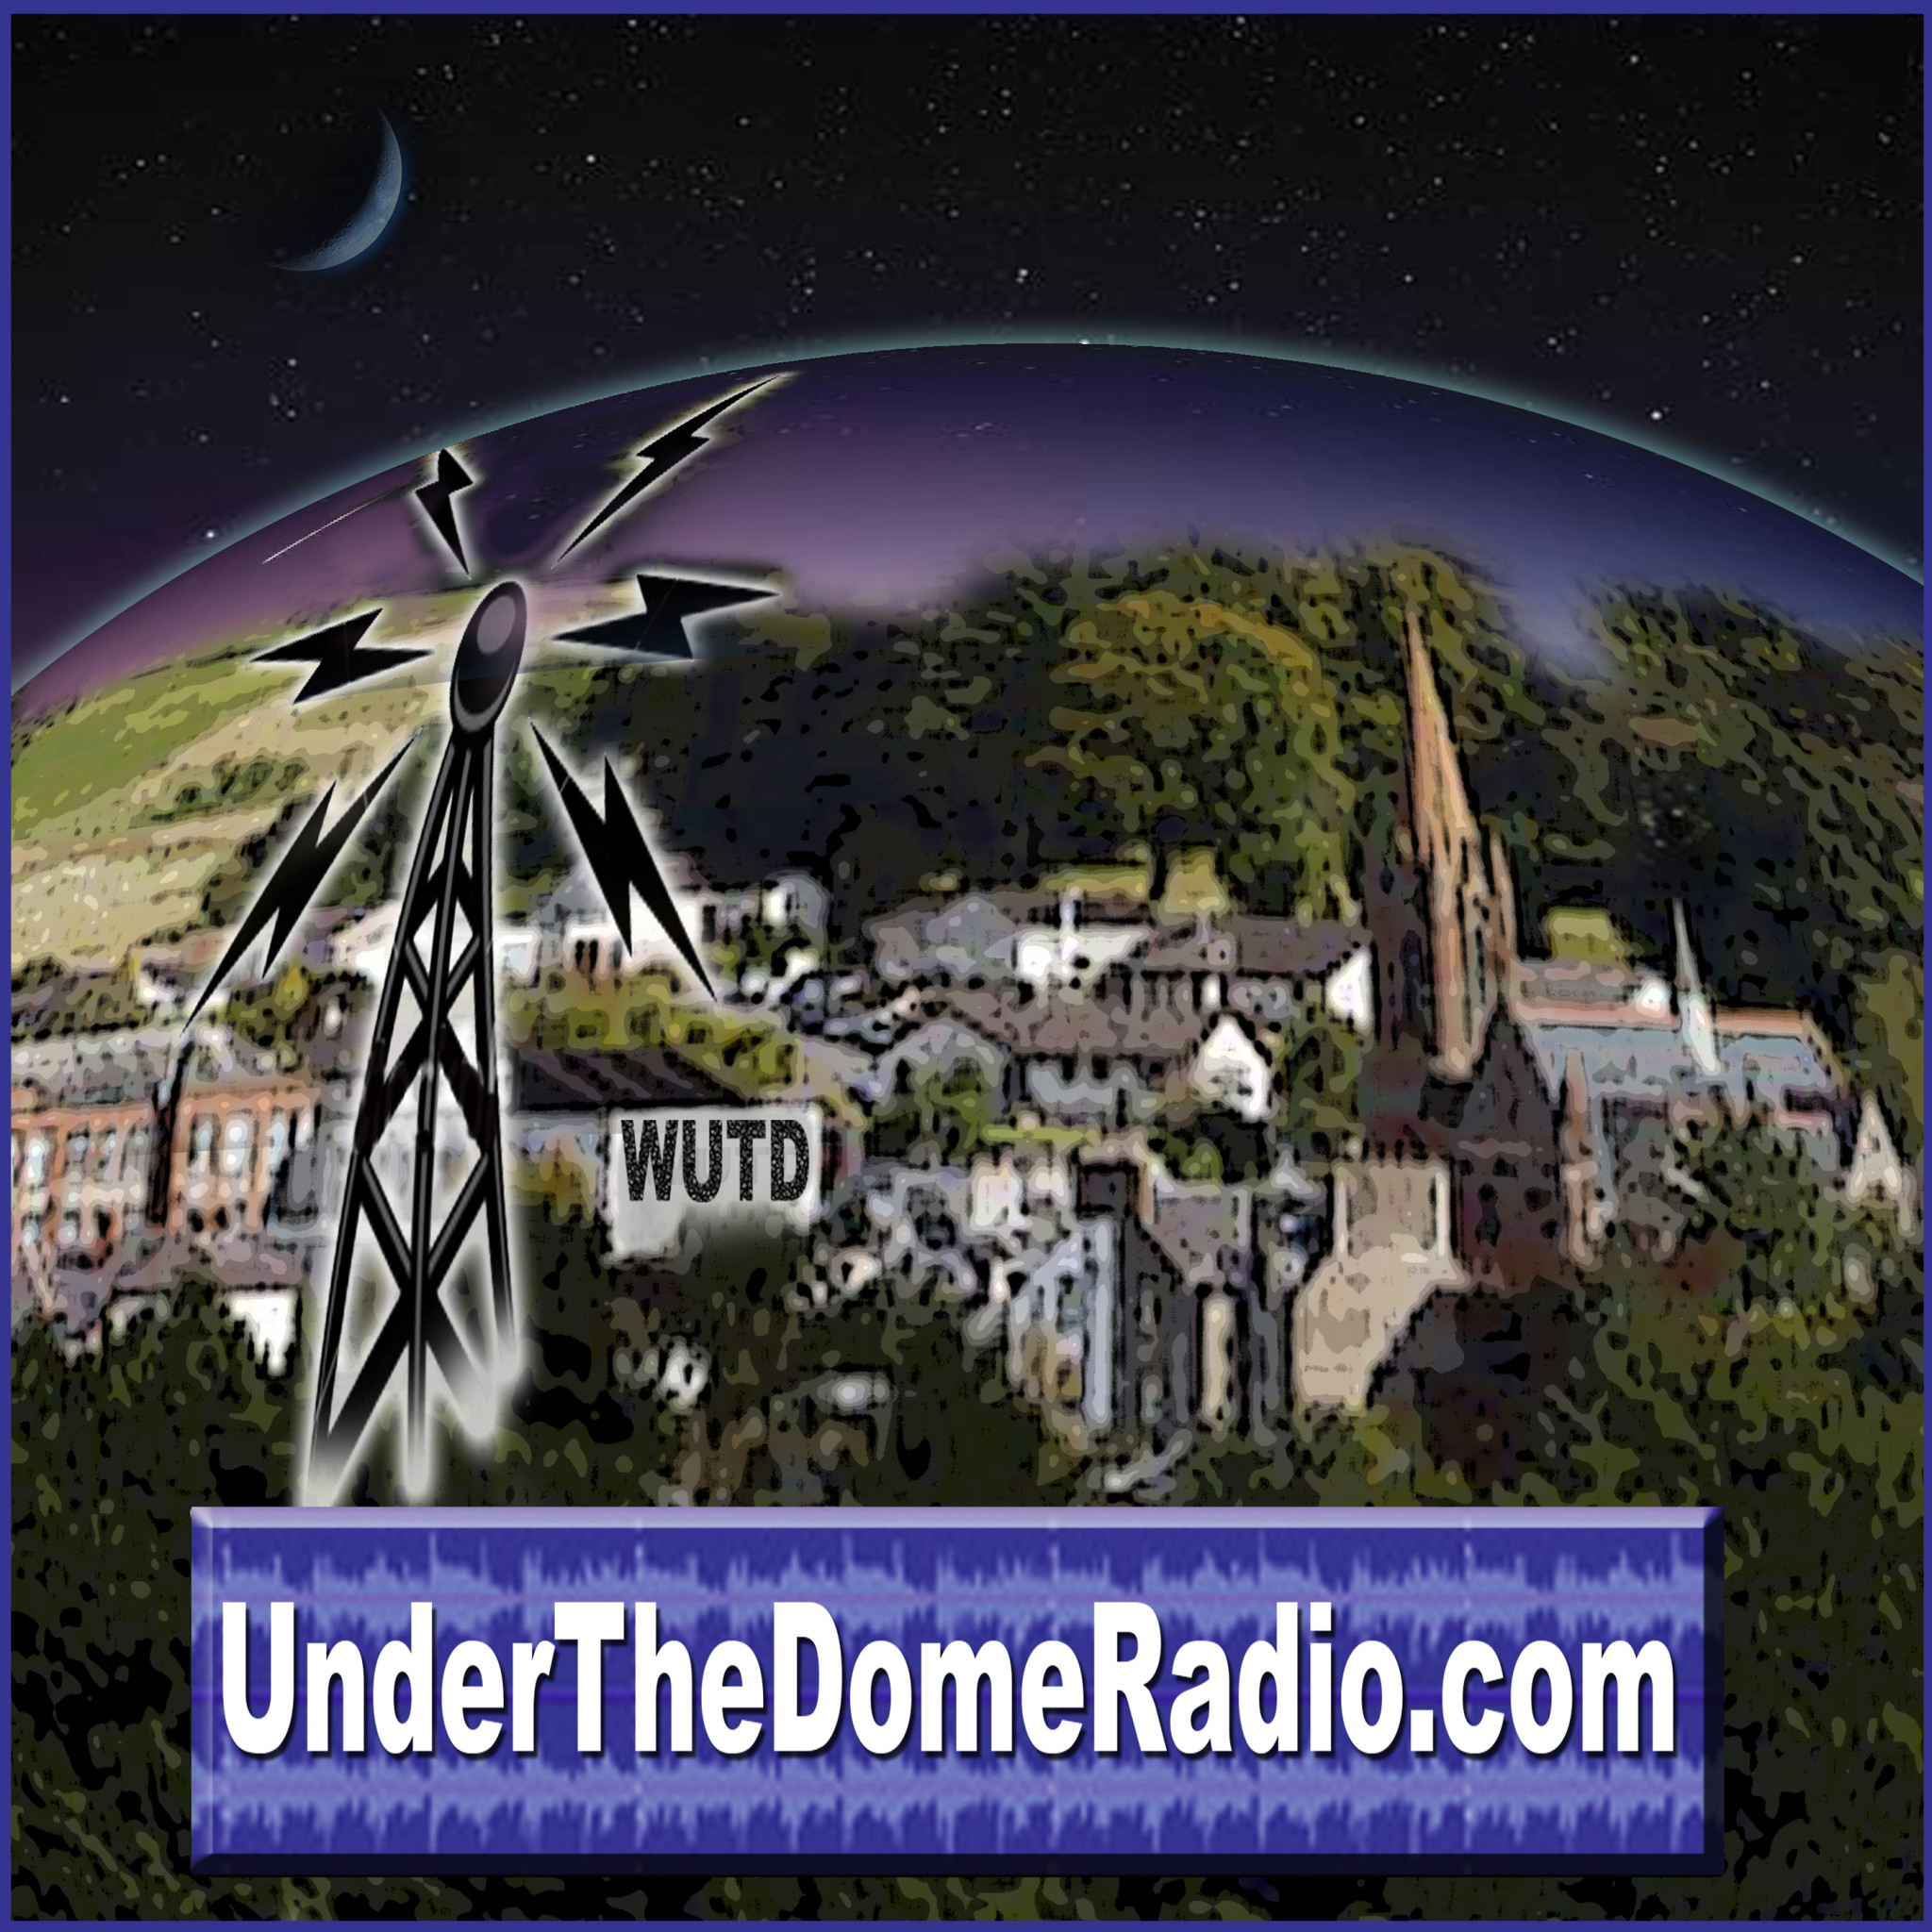 underthedomeradiopodcastlogo1400x1400